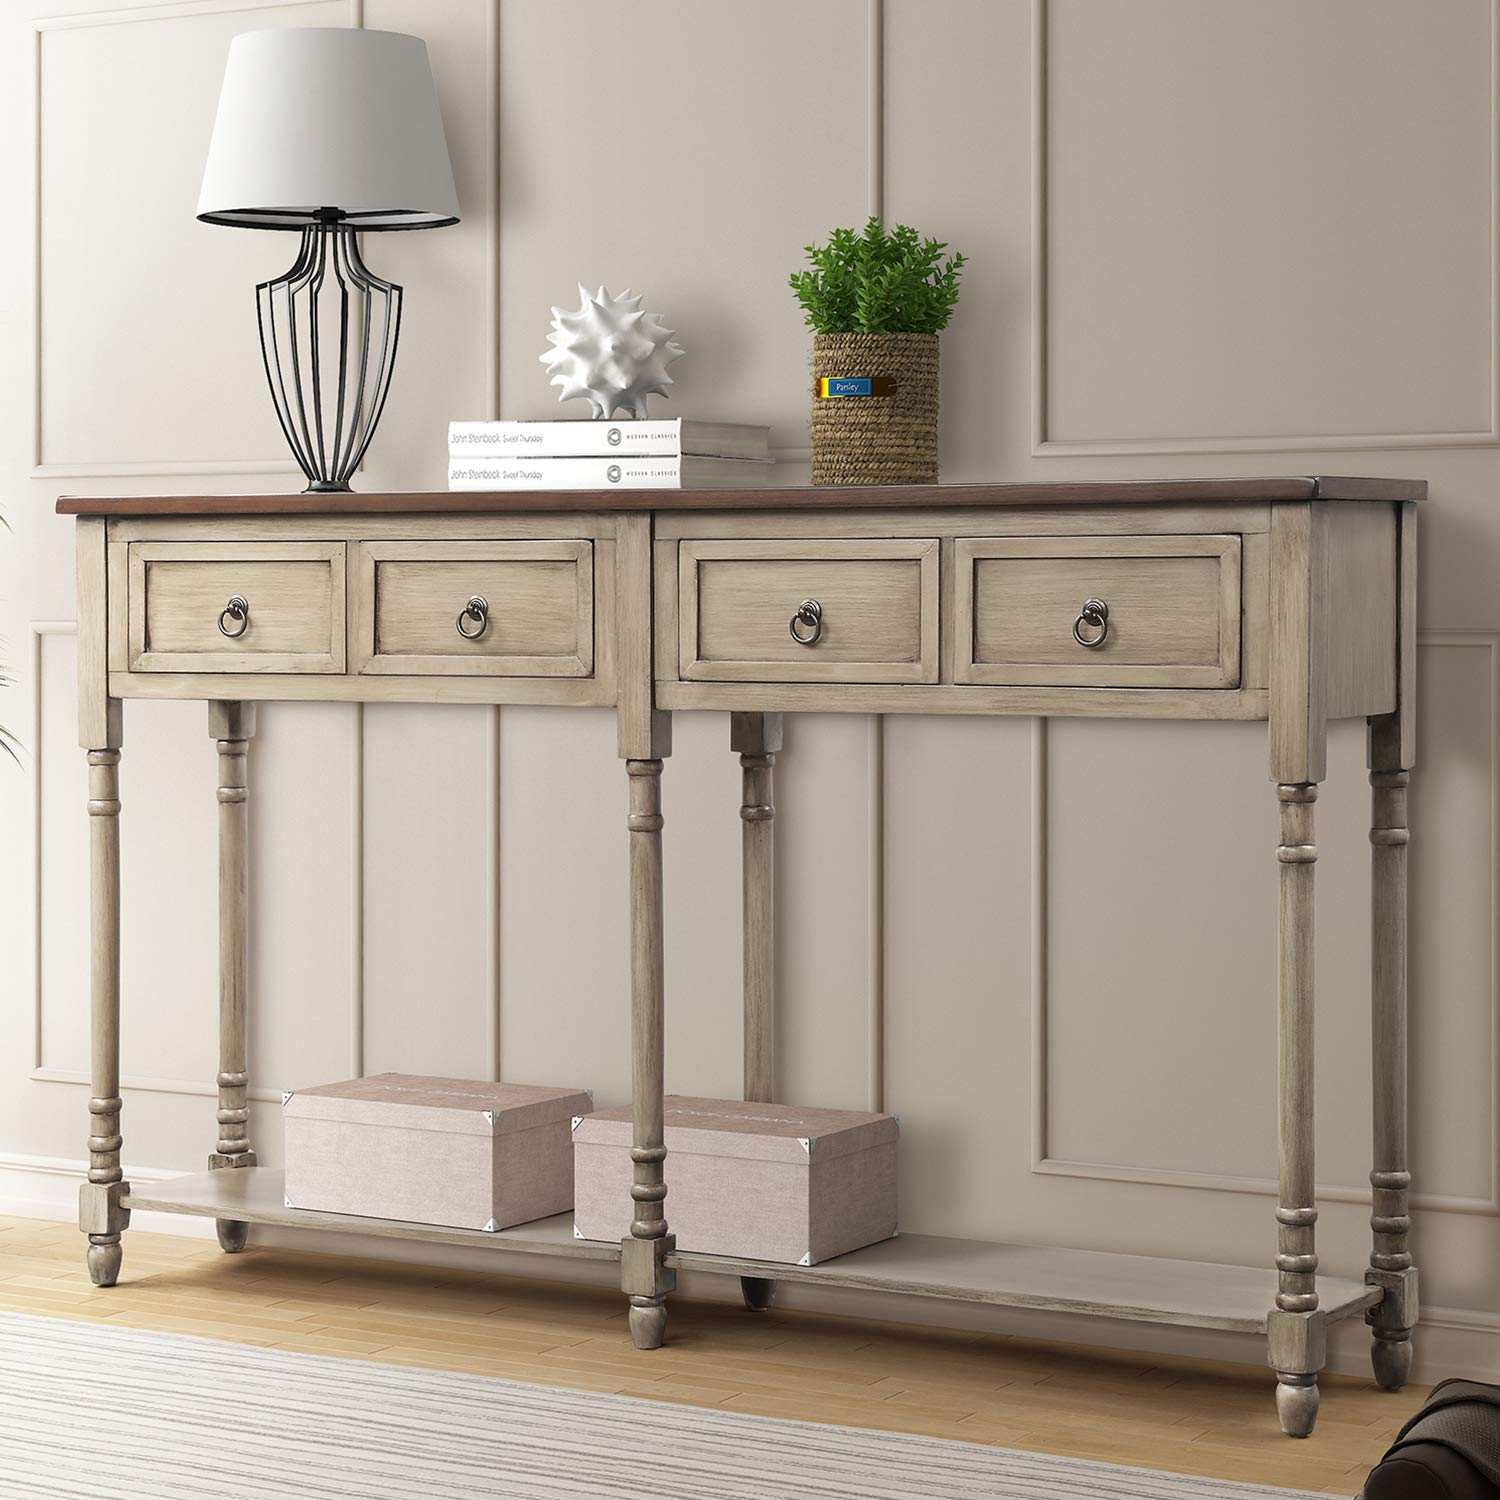 P PURLOVE Console Table Sofa Table with Storage for Entryway with Drawers and Shelf Rectangular Living Room Table(Antique Gray) by P PURLOVE